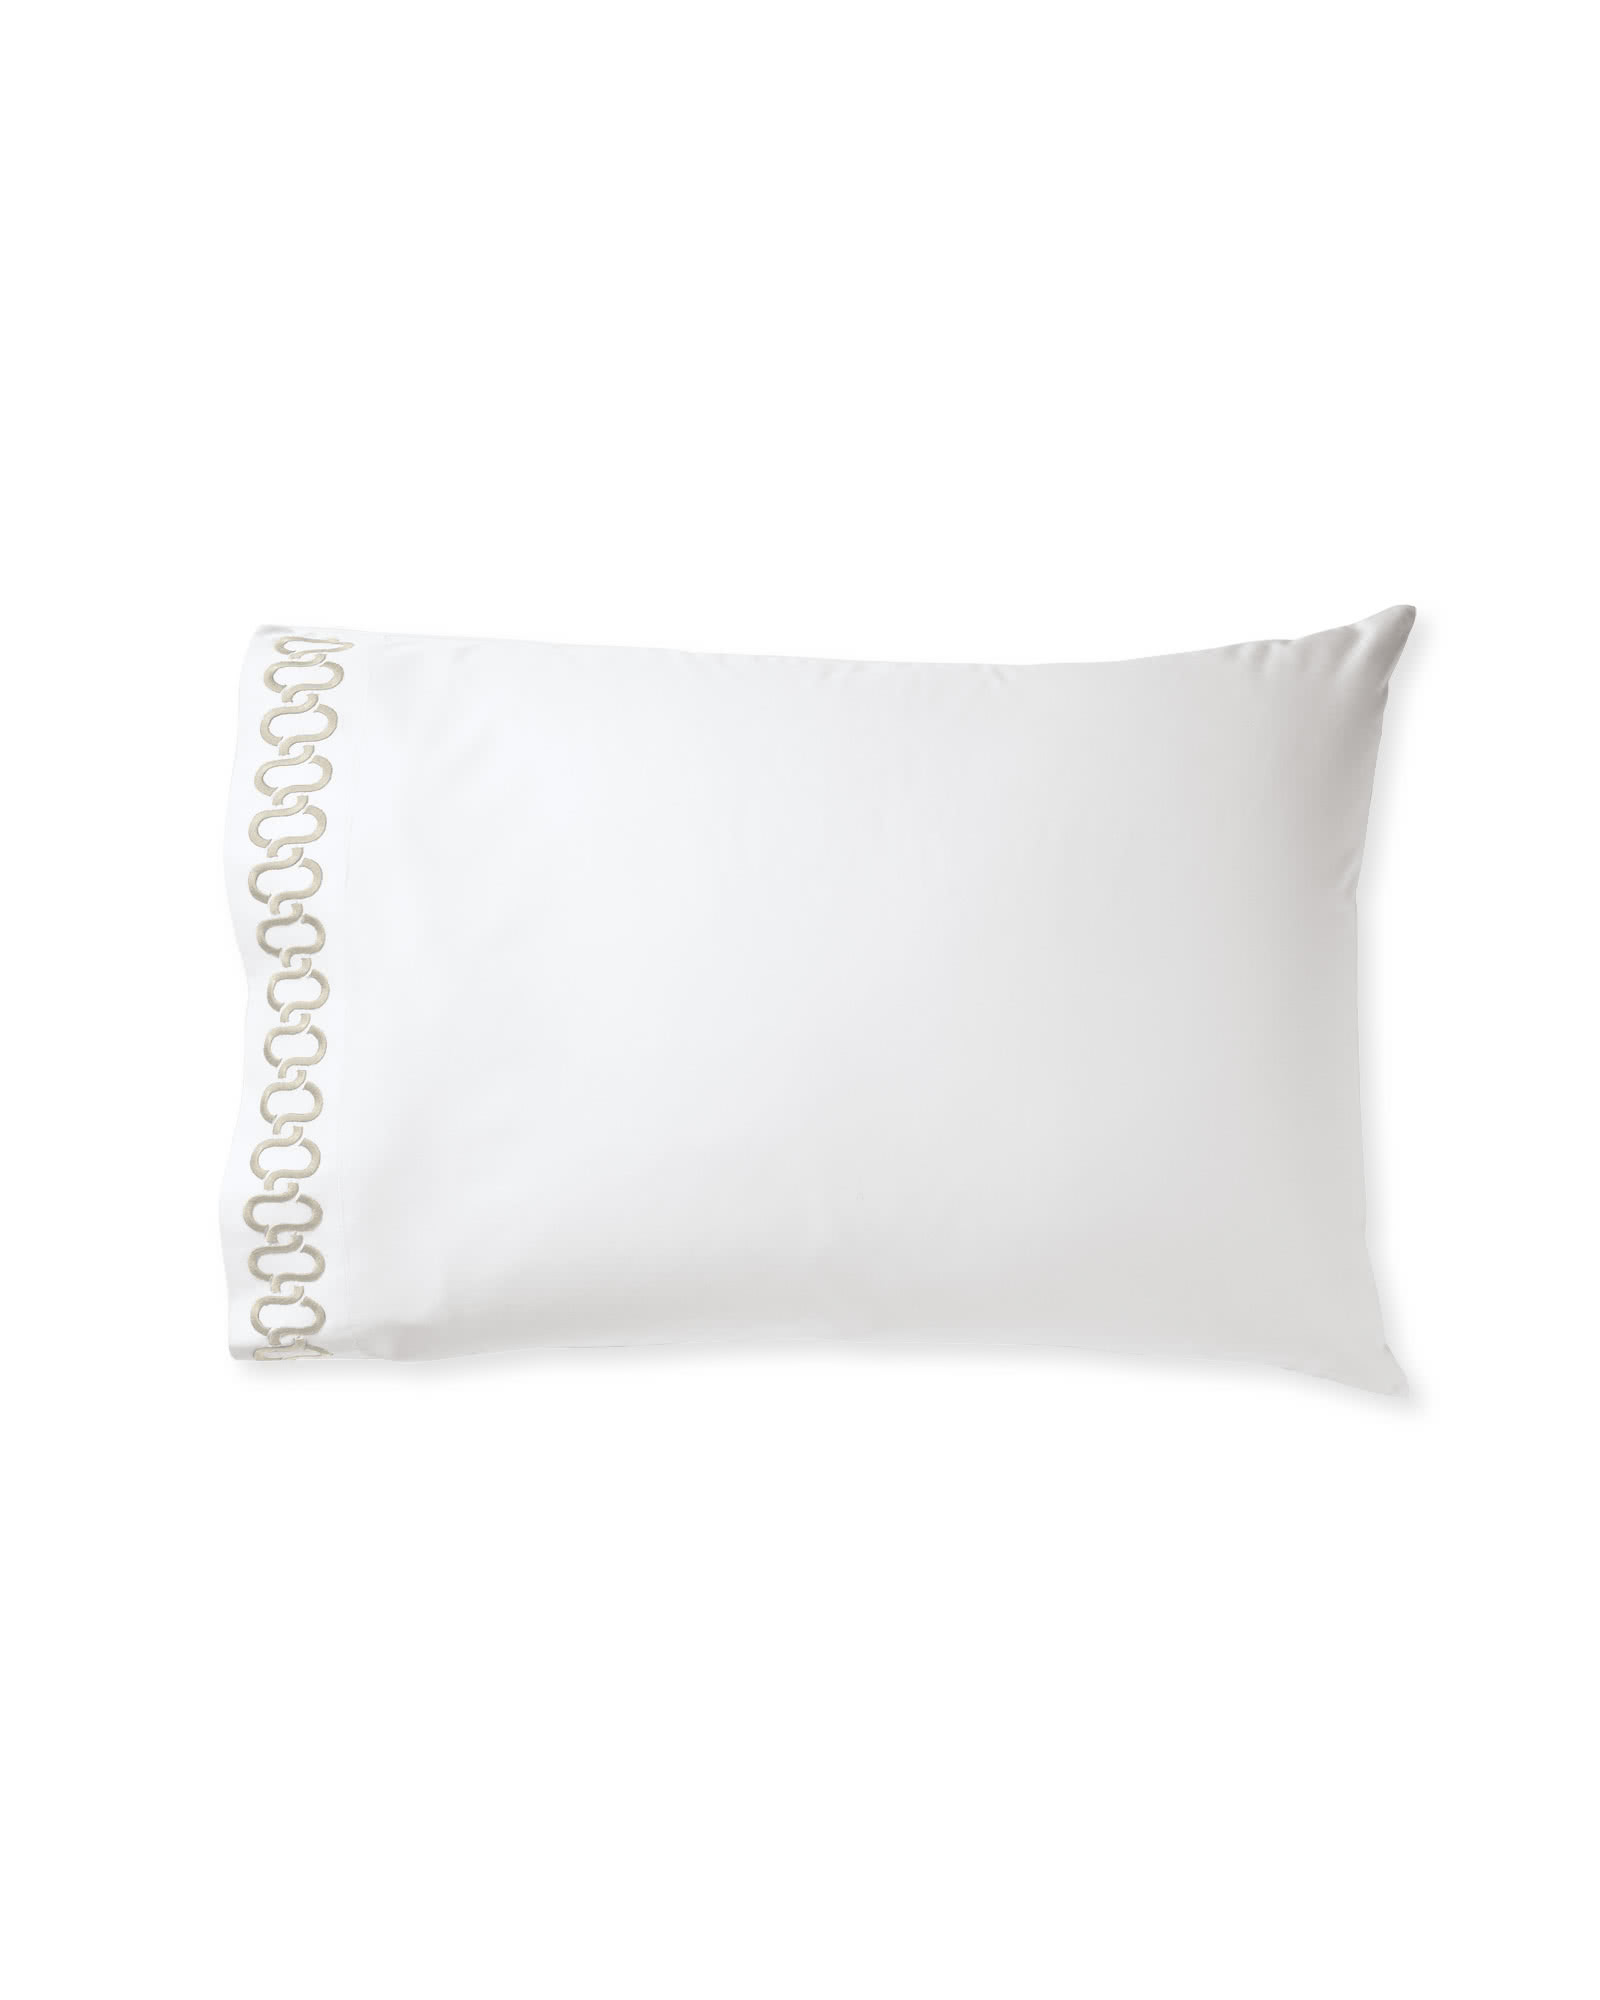 Savoy Embroidered Pillowcases (Extra Set of 2), Sand